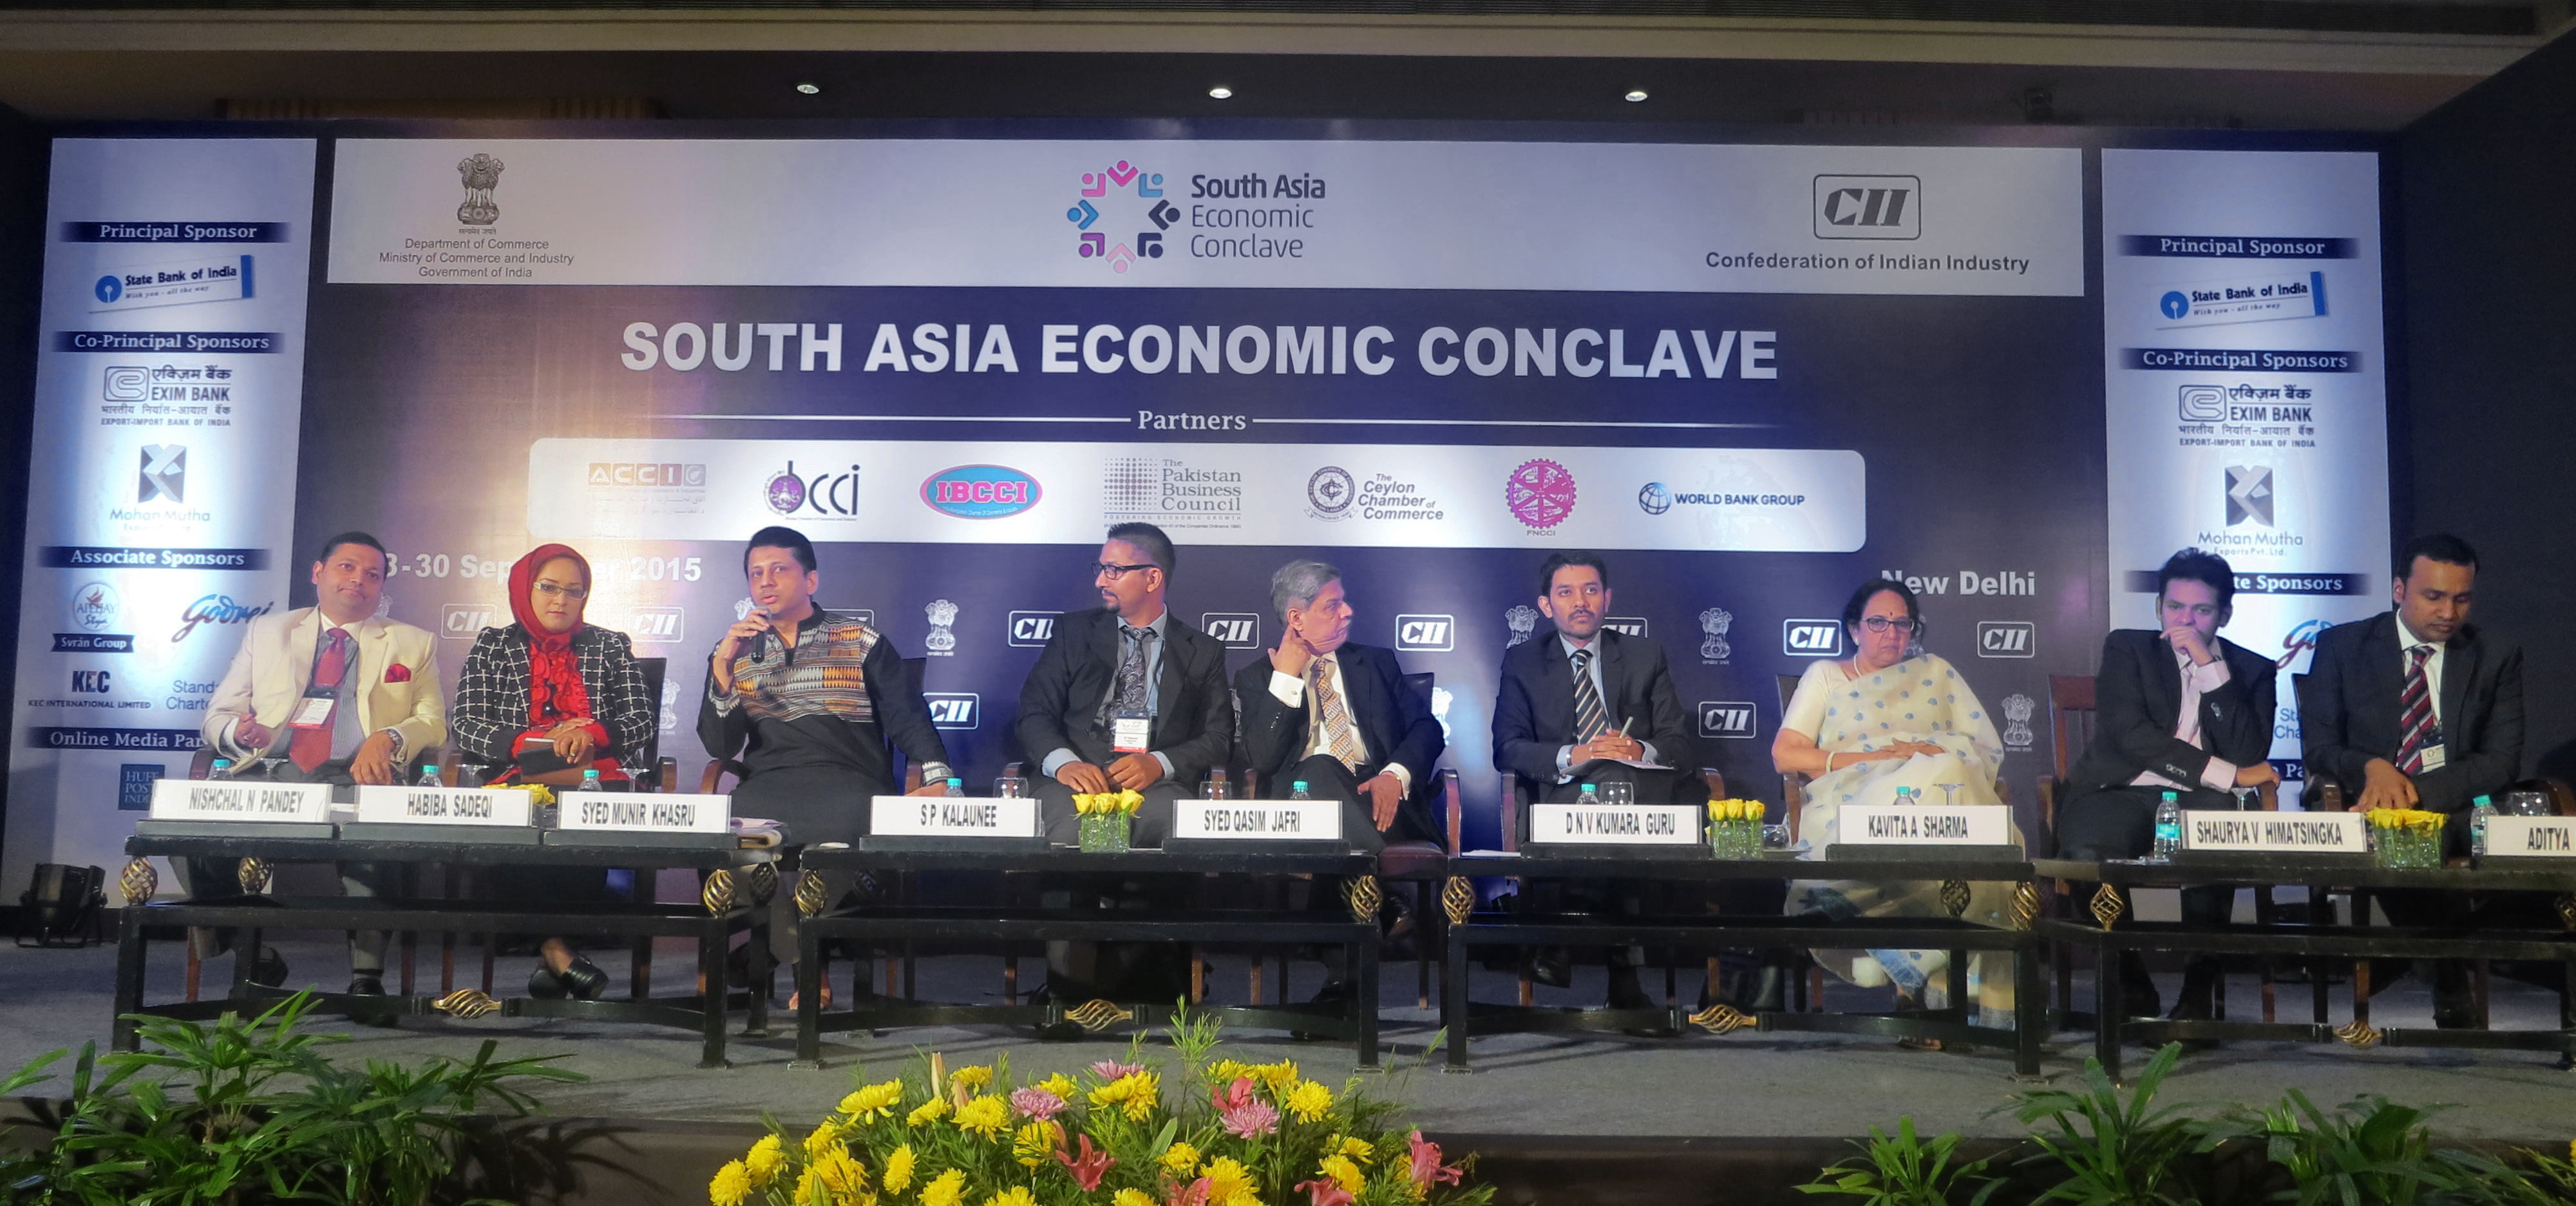 The South Asia Economic Conclave, September 28-30 , 2015